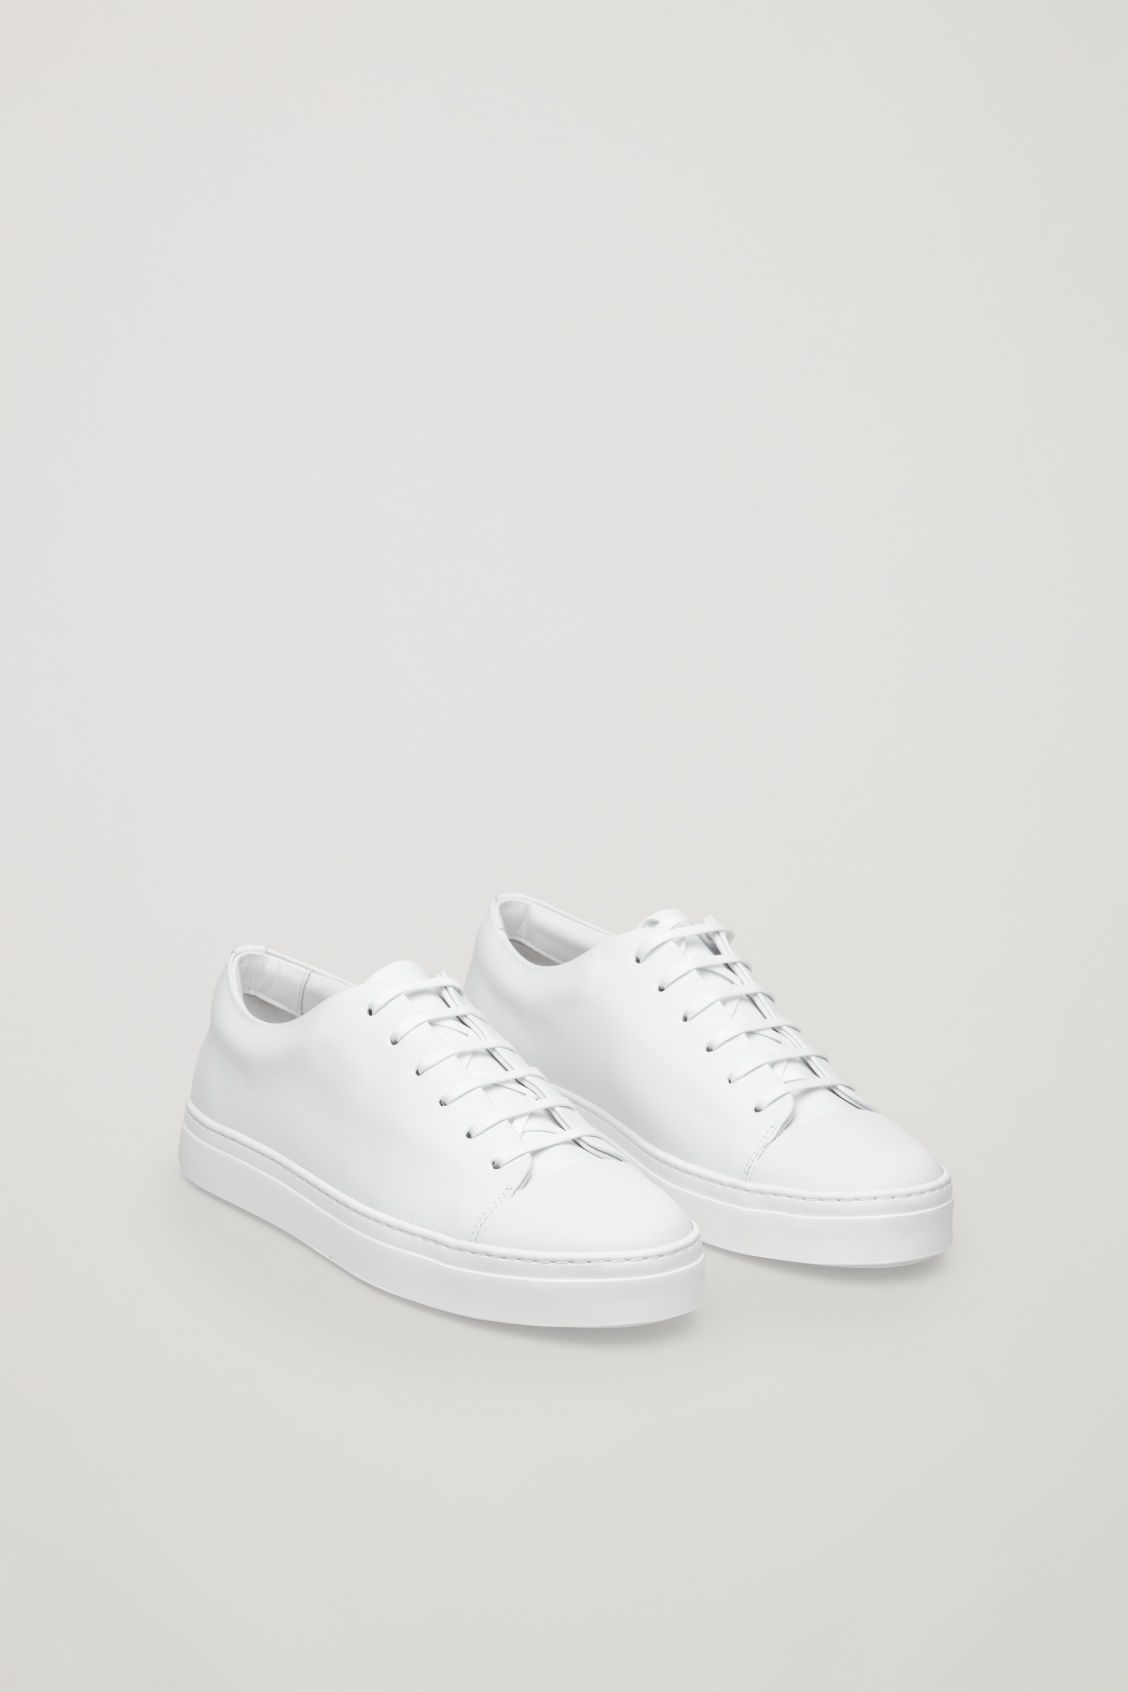 hot sale online a5c6b 1af99 adidas 3MC Vulc White Shoes in 2019  Fashion for Men  Pinterest  White  shoes outfit, White fashion sneakers and White shoes